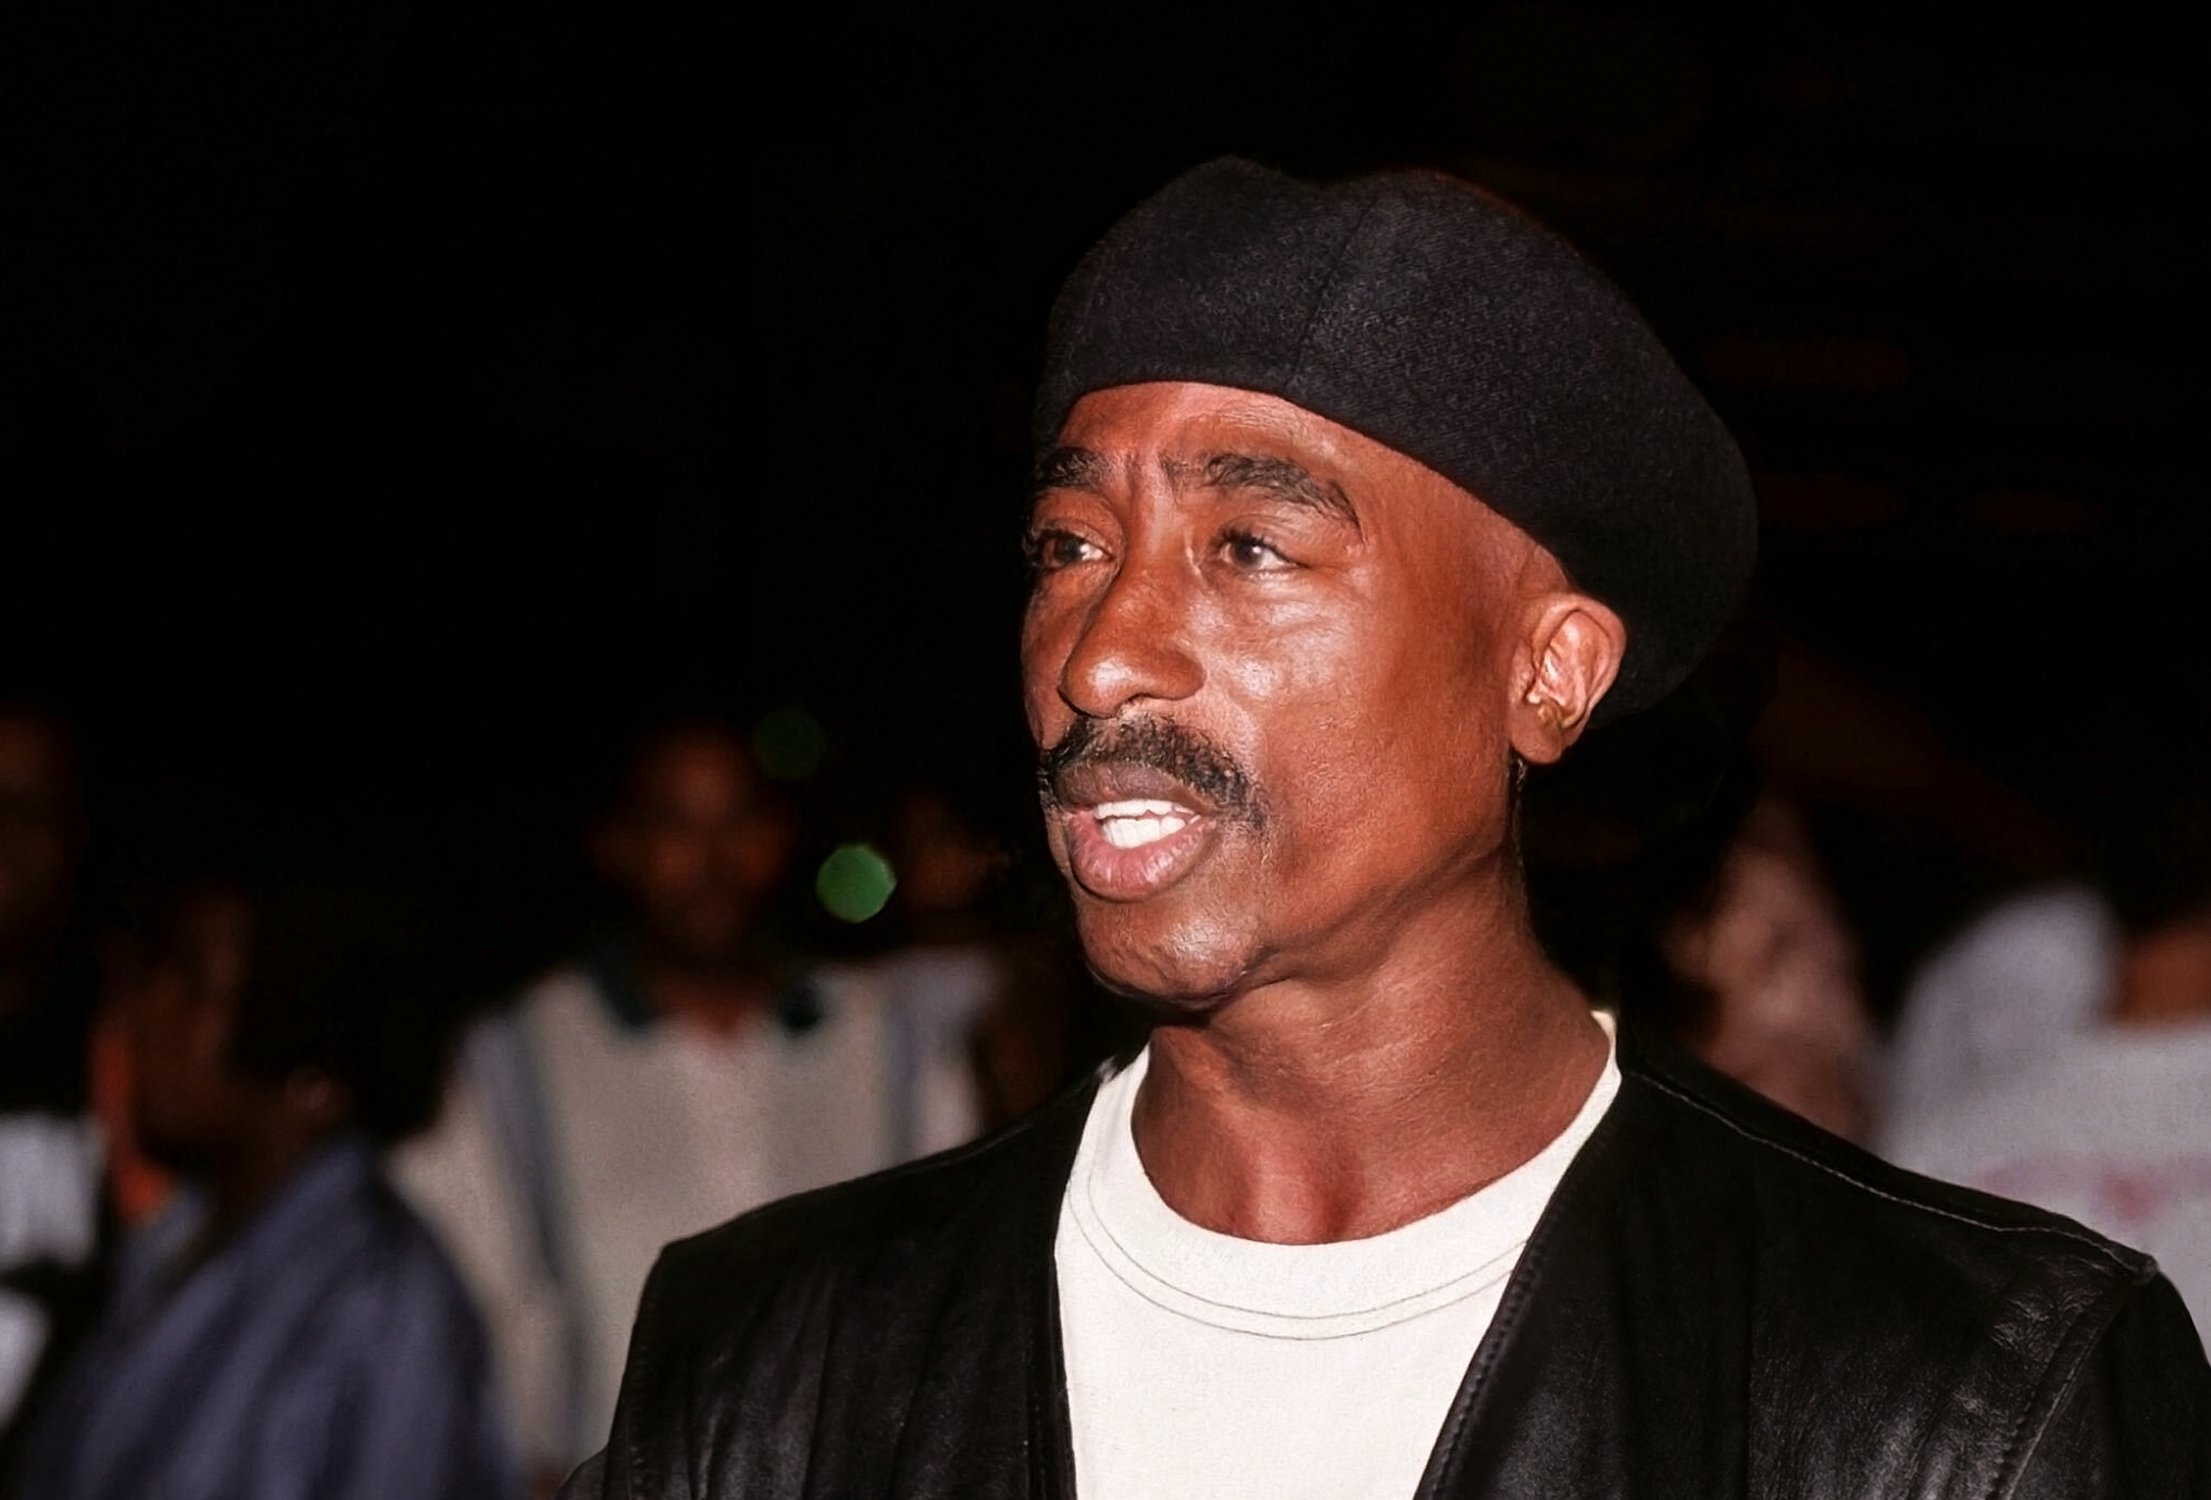 Ein älterer Tupac Shakur | Quelle: Getty Images